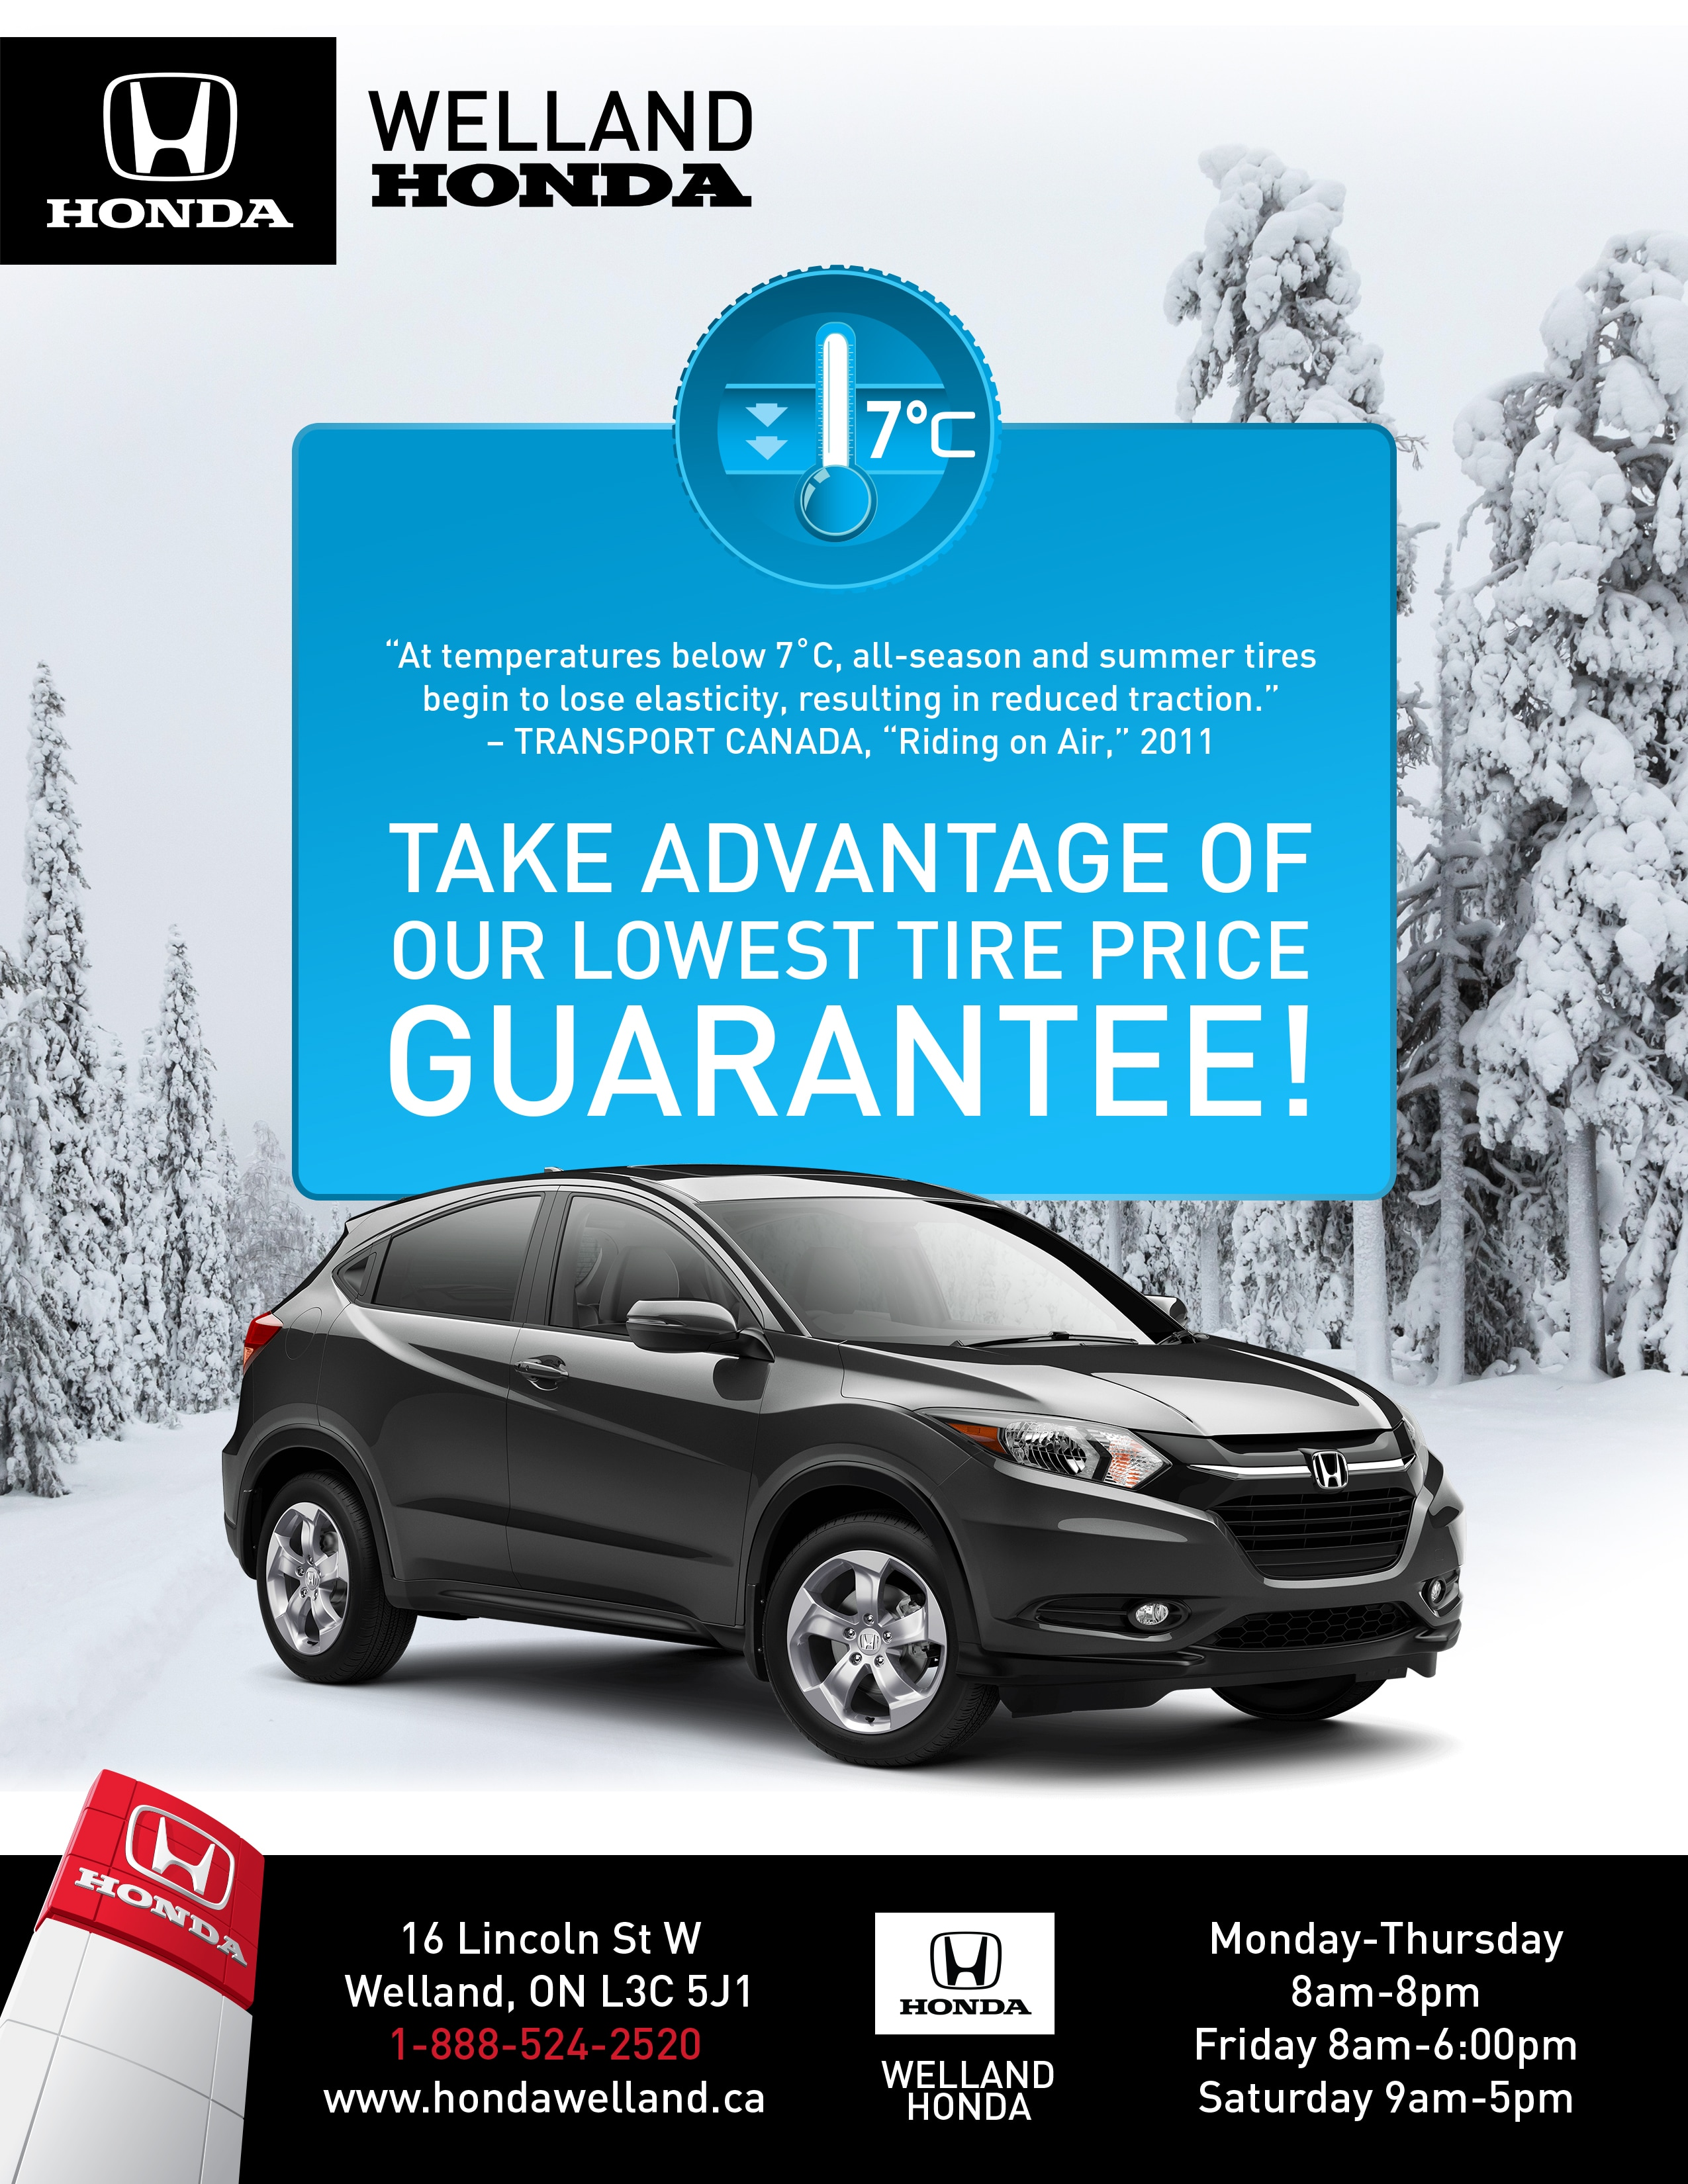 Welland Tires Summer And Winter Tires Welland Tires And Rims